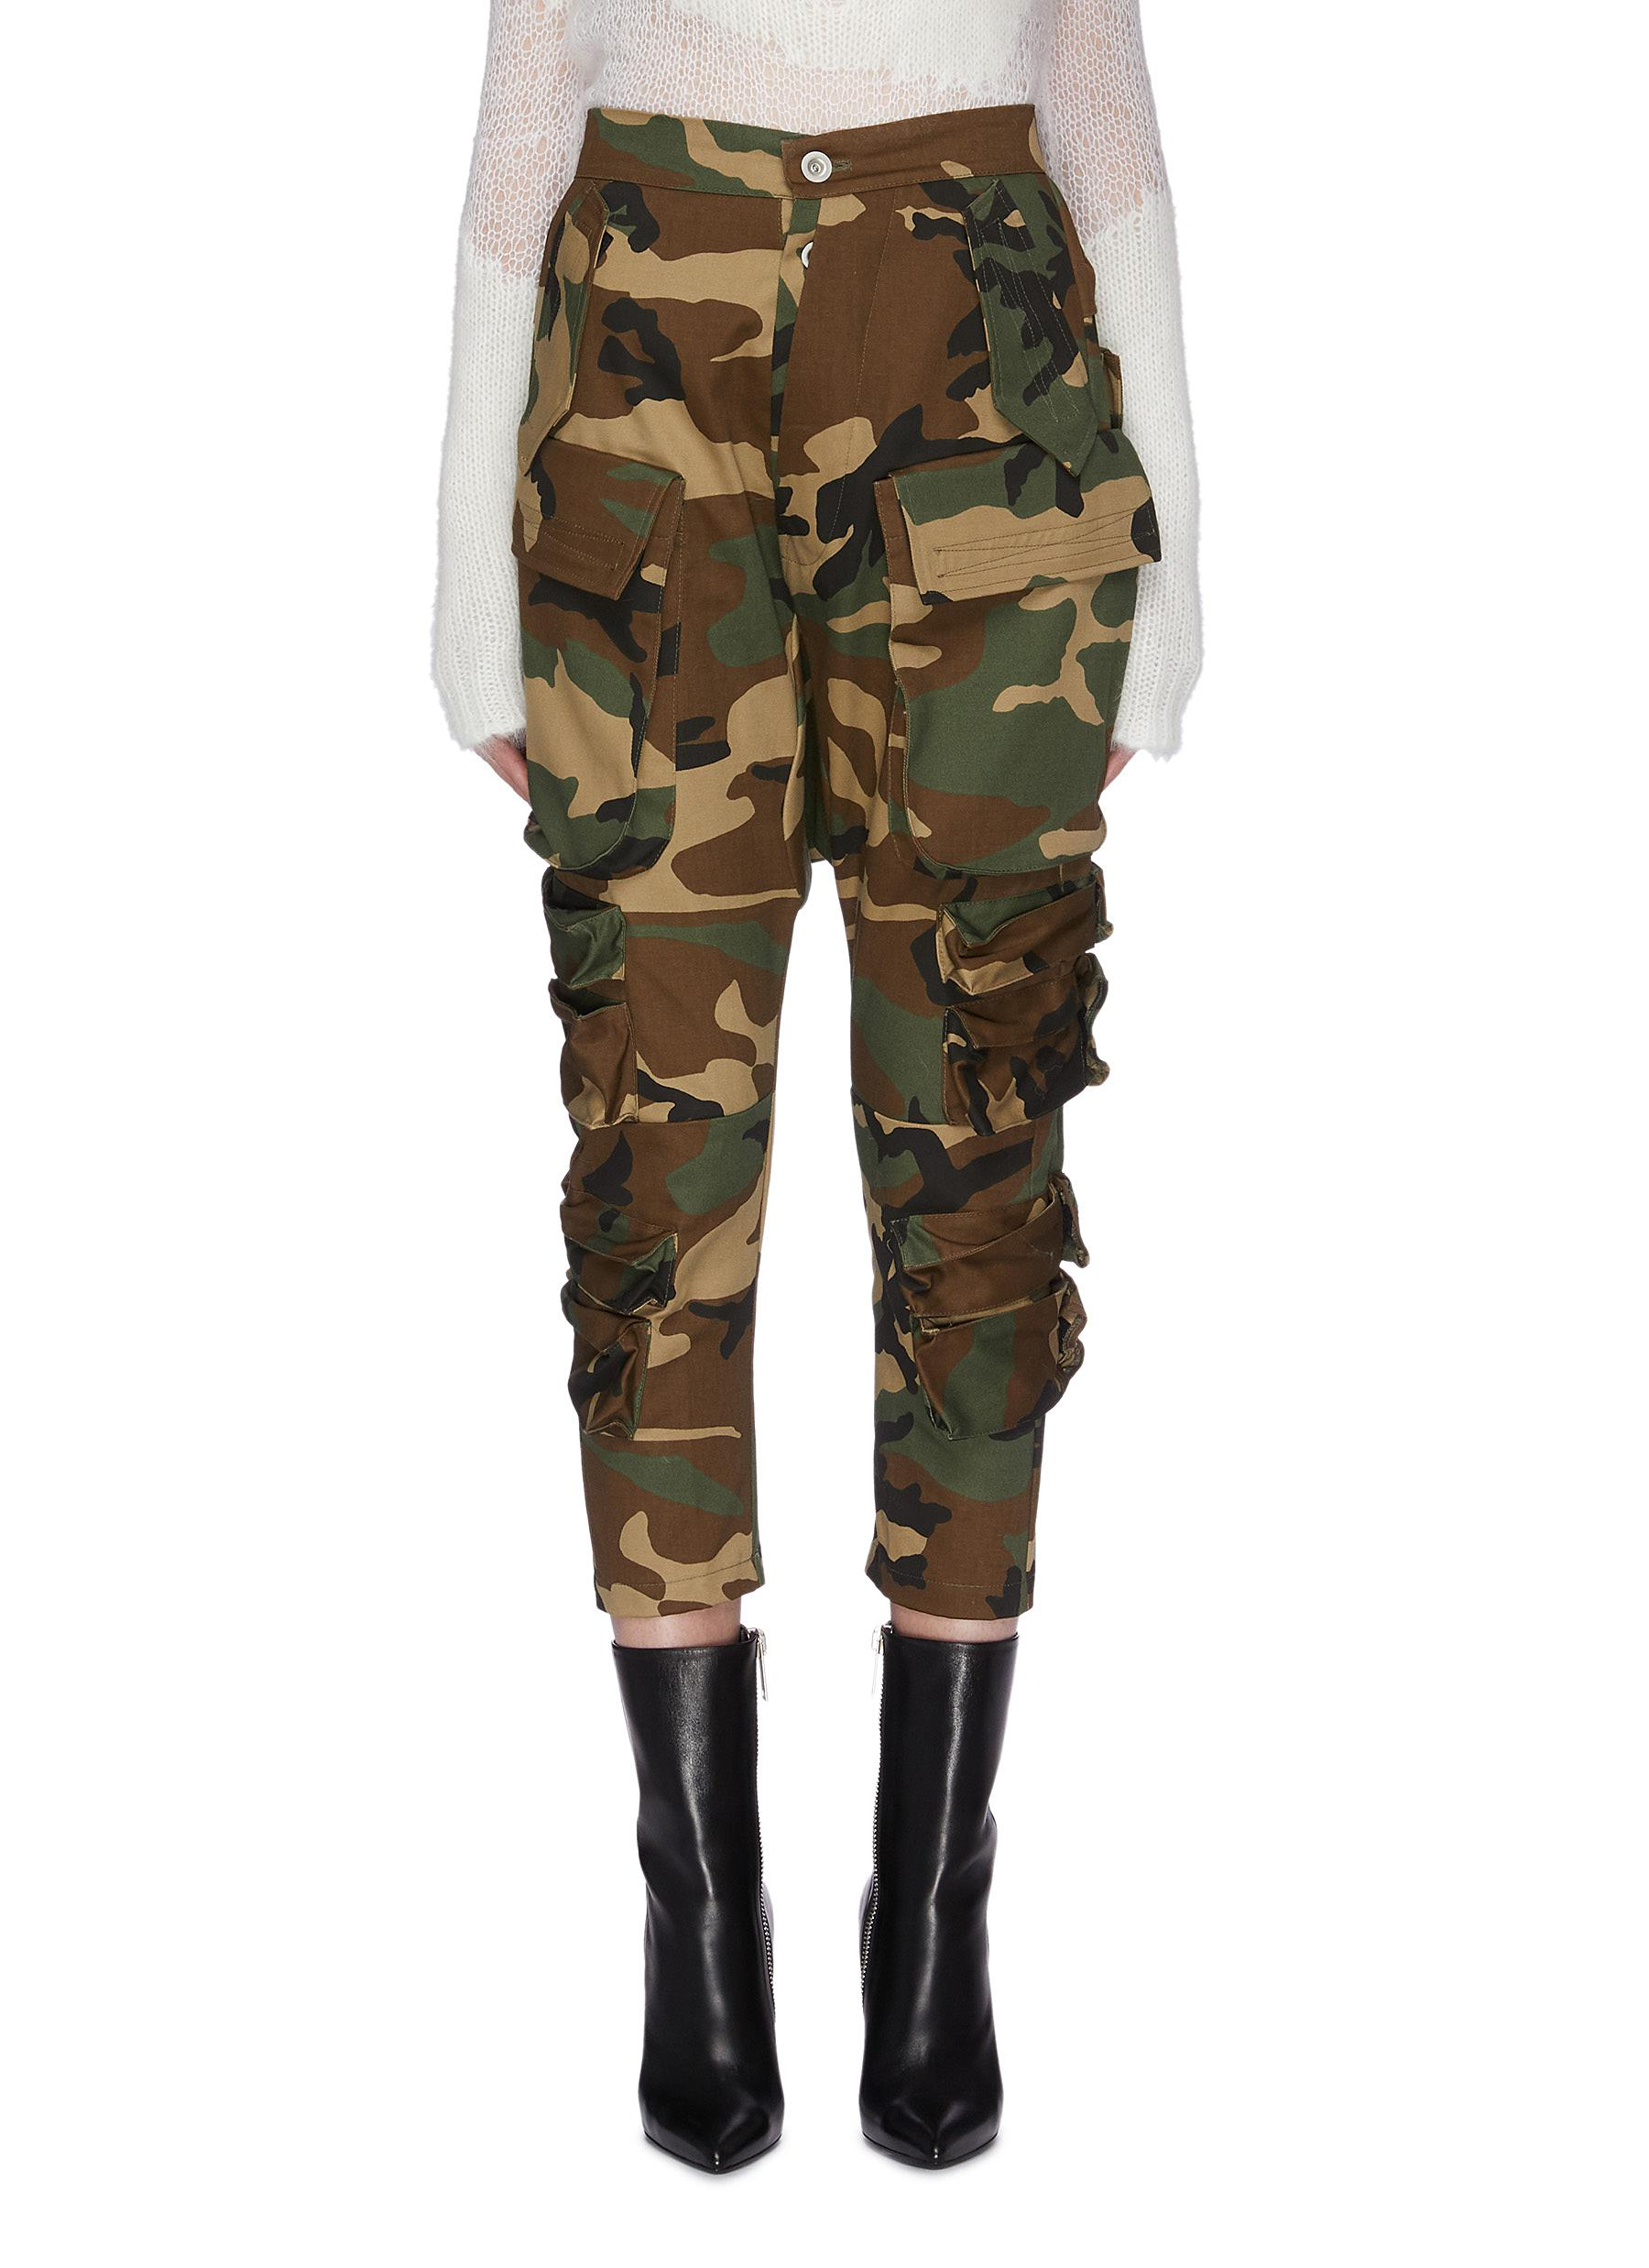 Patch pocket camoflage print cargo pants by Ben Taverniti Unravel Project